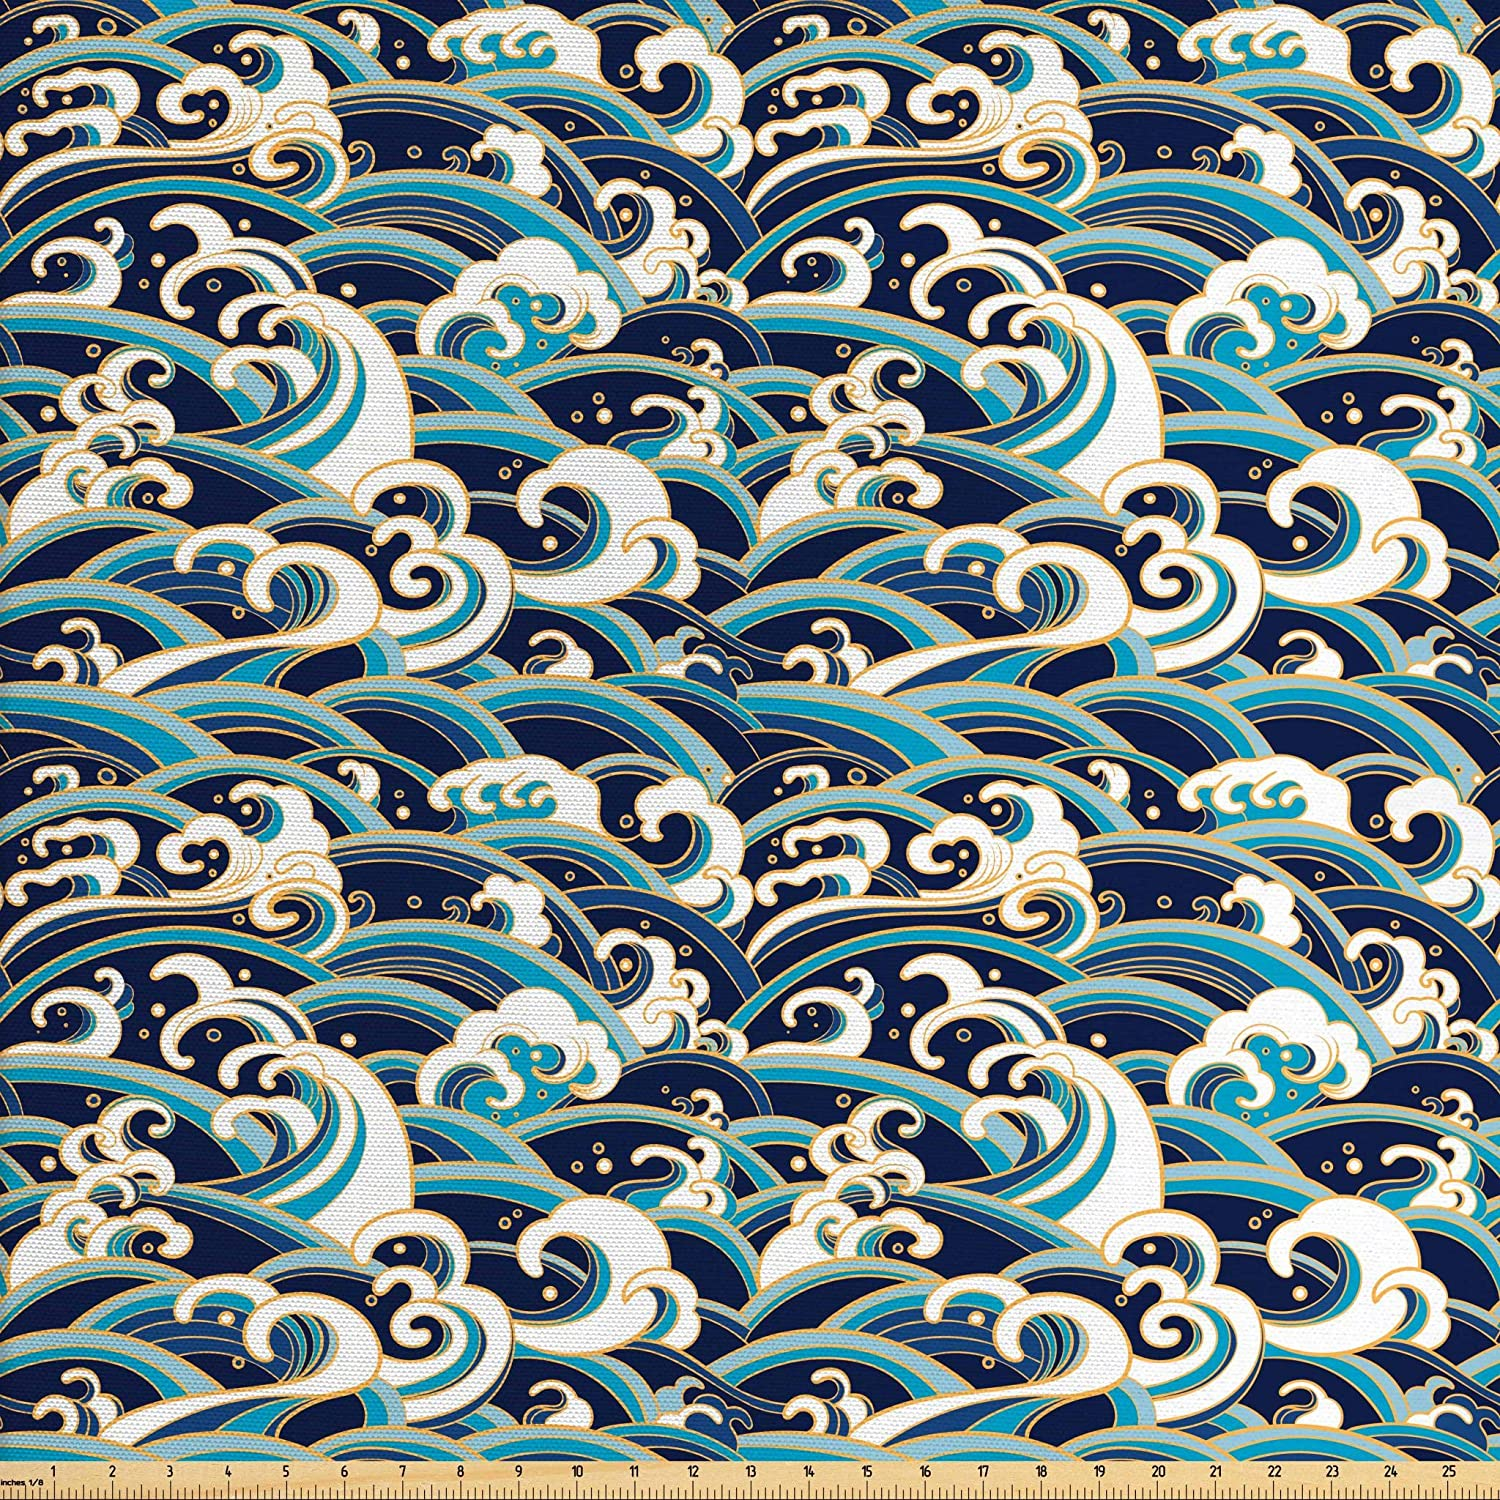 Ambesonne Nautical Fabric by The Yard, Traditional Oriental Style Ocean Waves Pattern with Foam and Splashes Print, Decorative Fabric for Upholstery and Home Accents, 1 Yard, Blue Gold